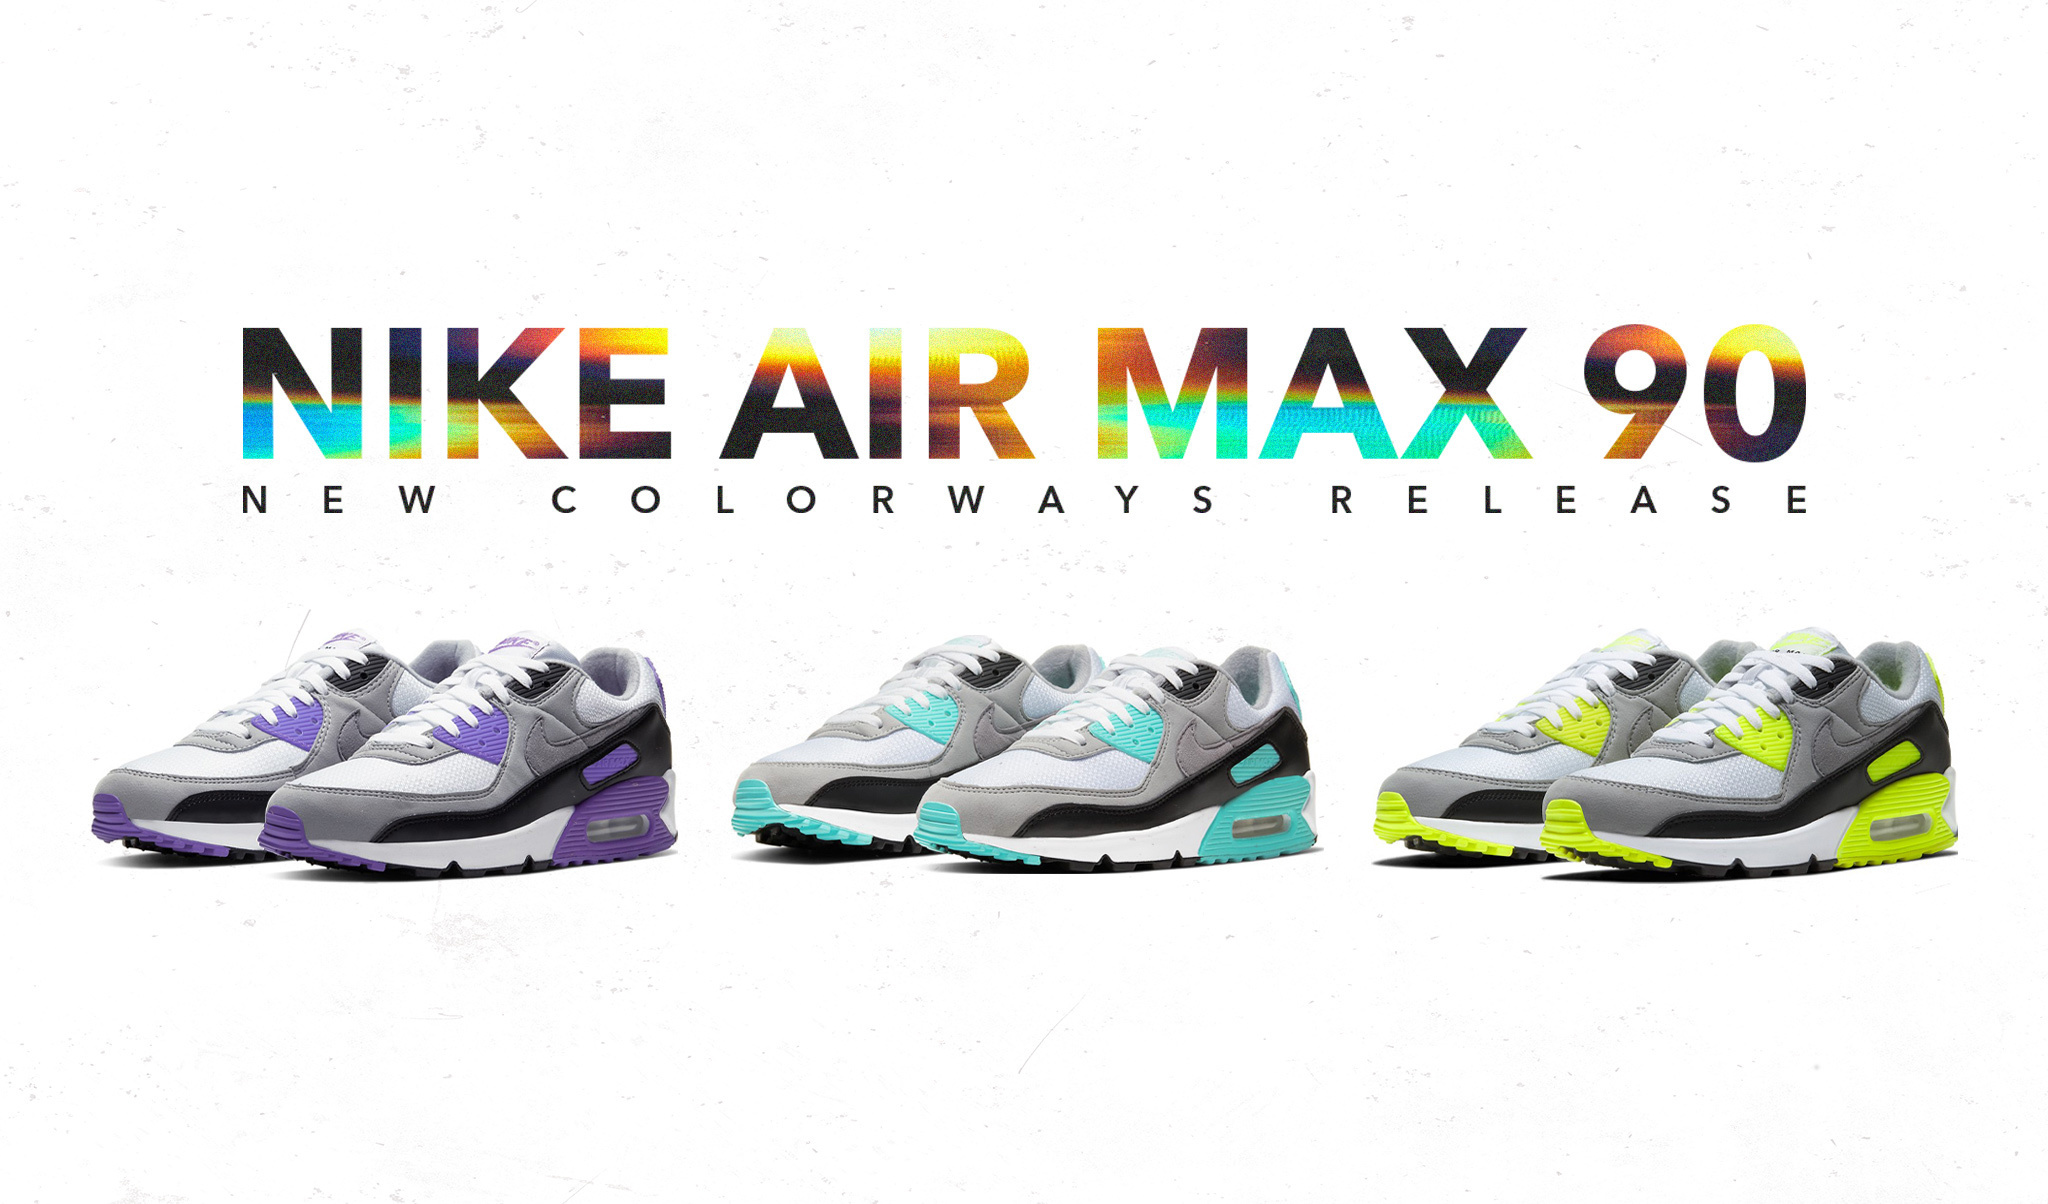 Nike Air Max 90 new color ways release